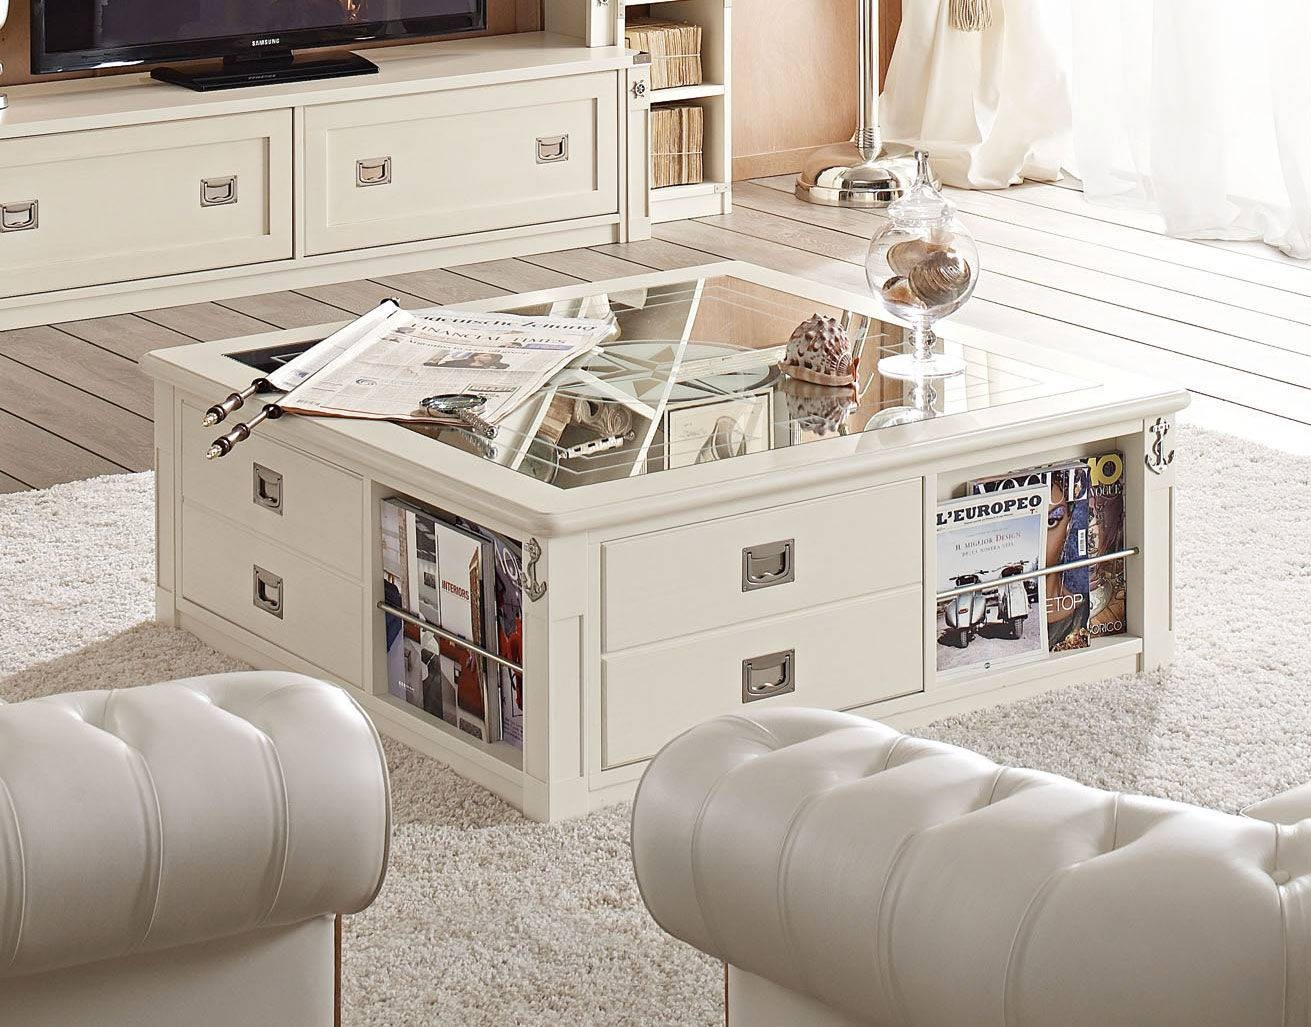 Helpful Square Coffee Tables | Home Furniture And Decor with regard to Square Coffee Tables With Storage (Image 17 of 30)